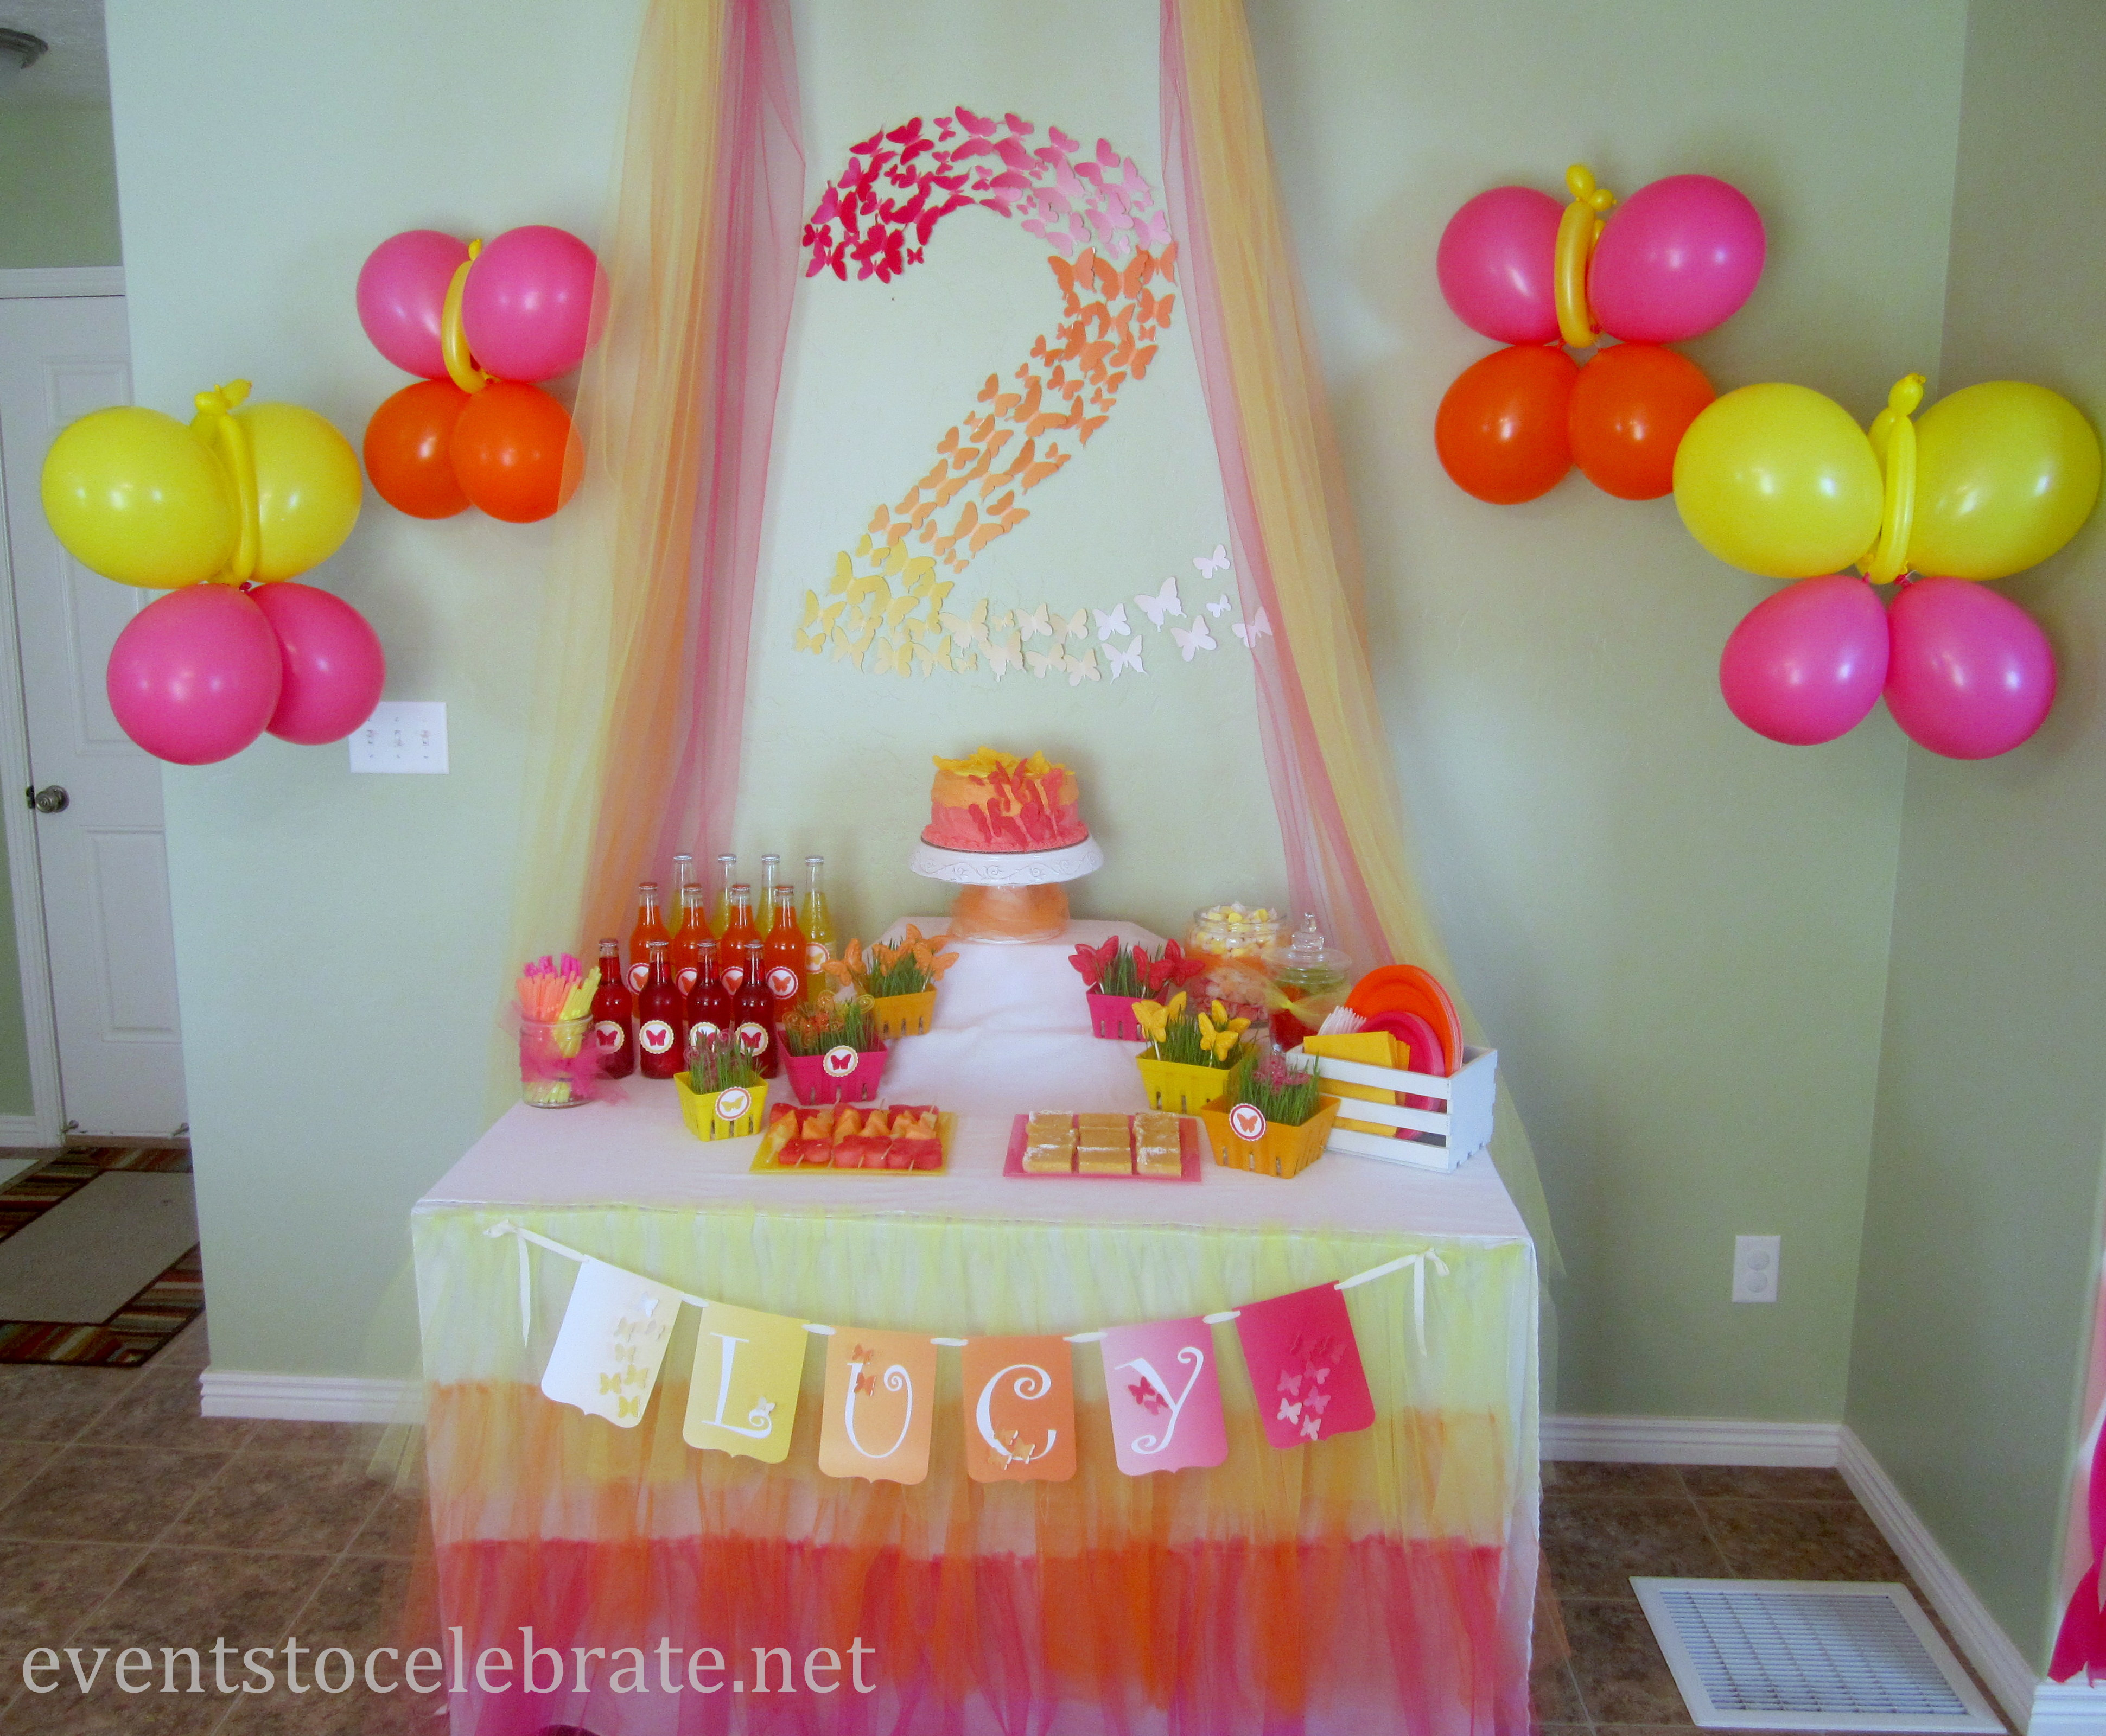 Best ideas about Birthday Party Decorations At Home . Save or Pin Butterfly Themed Birthday Party Decorations events to Now.